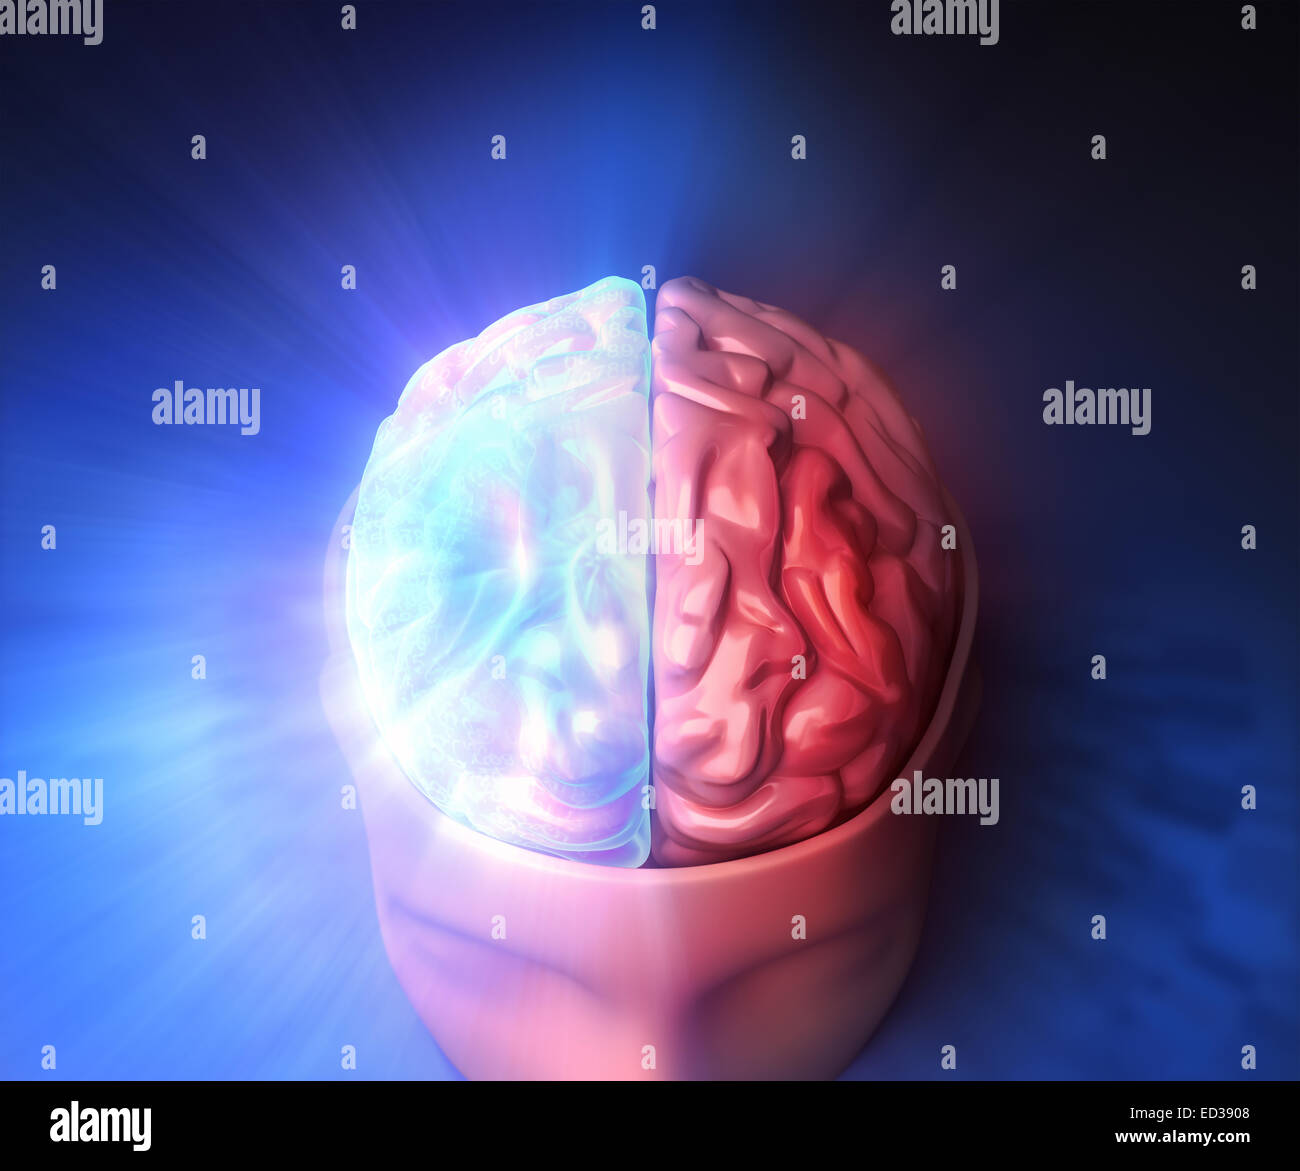 Human brain with glow and light. - Stock Image